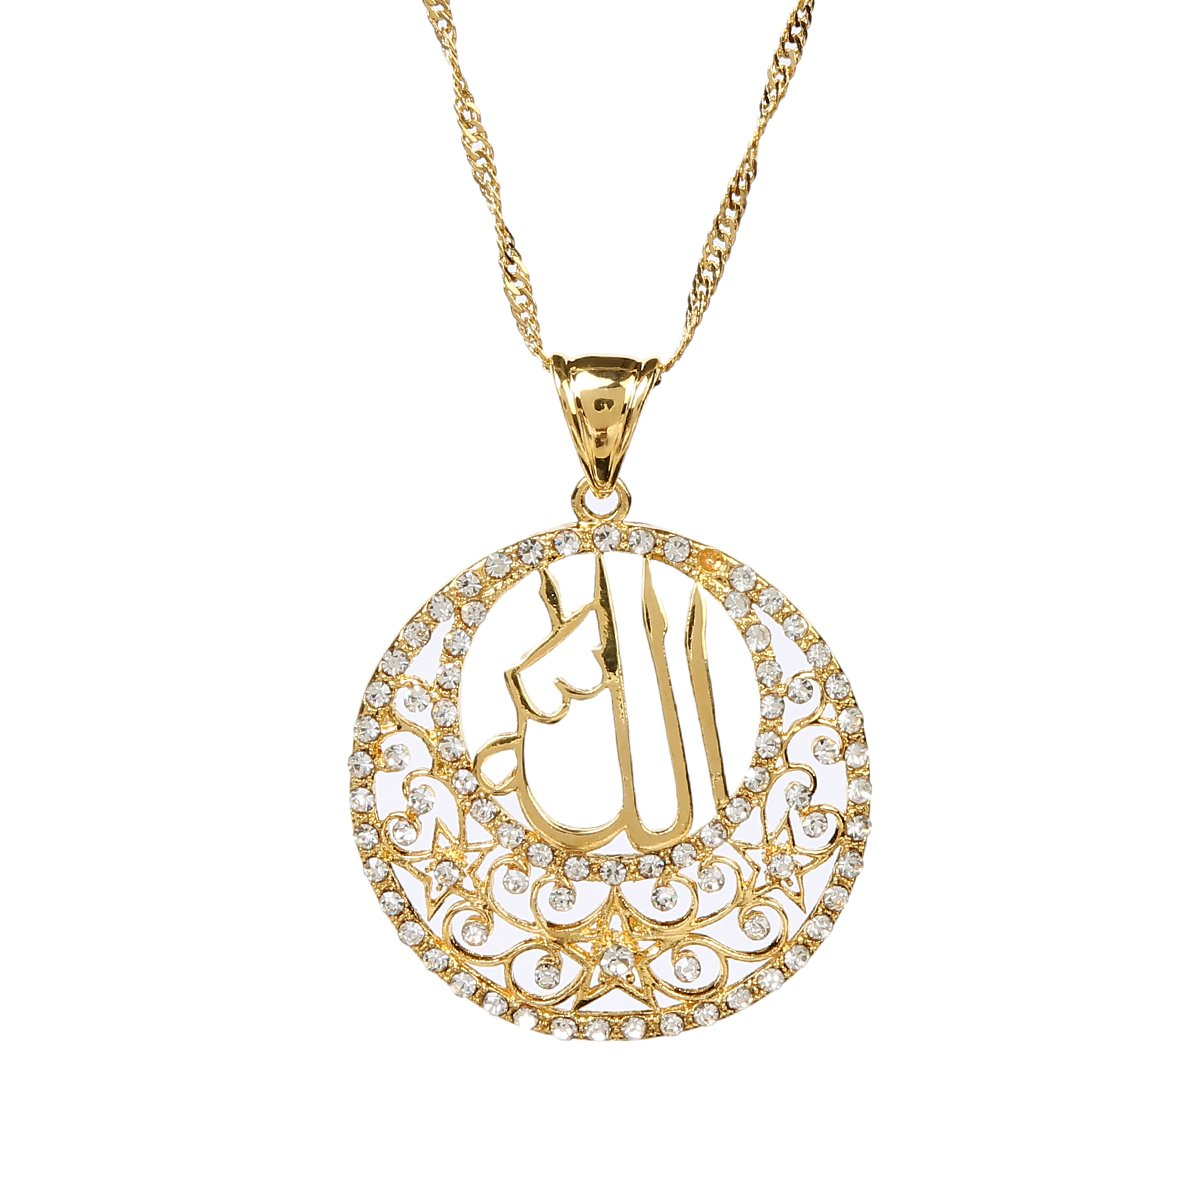 bca23f349a8 Glaze Round Pendant Jewelry 24k Gold Plated Religious Islamic Muslim Allah  Crystal Pendant: Amazon.ca: Jewelry